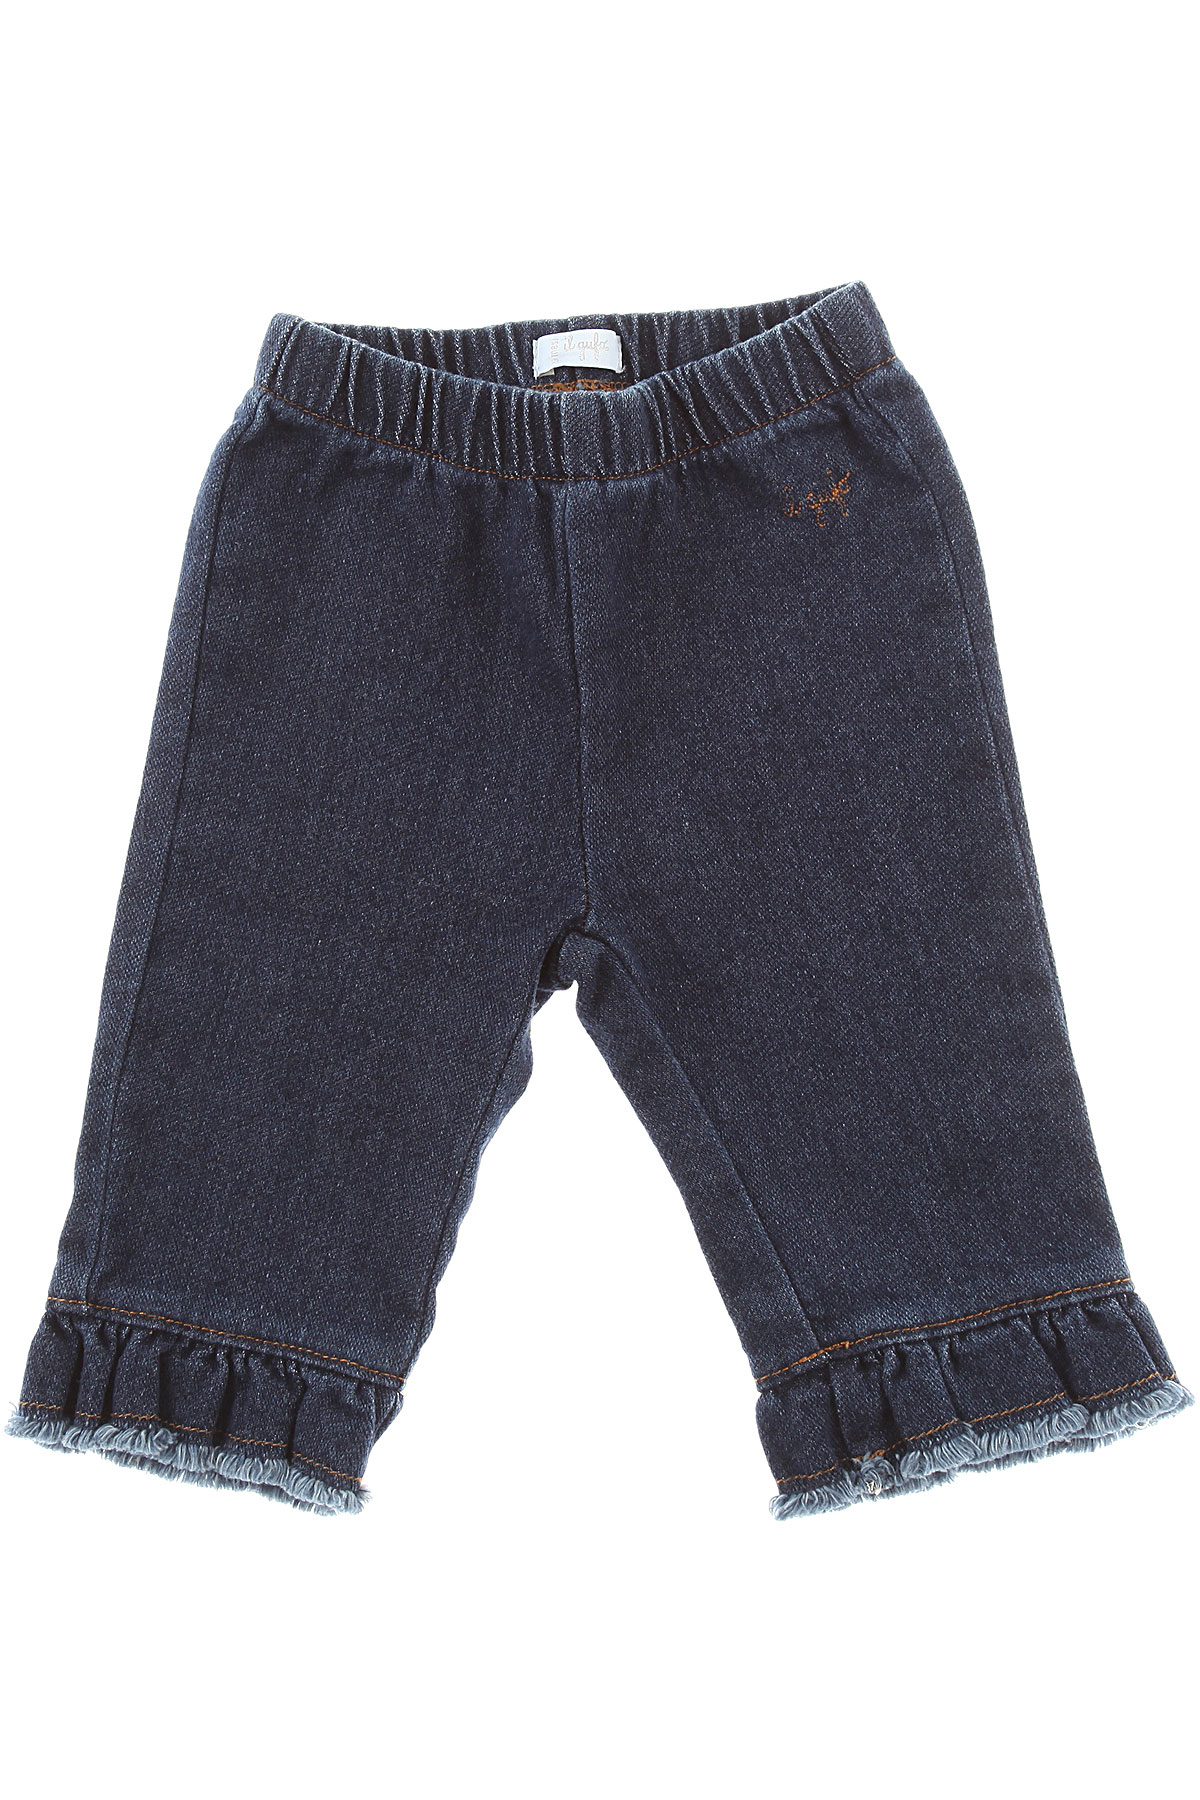 Image of Il Gufo Baby Pants for Girls, Denim, Cotton, 2017, 12M 9M